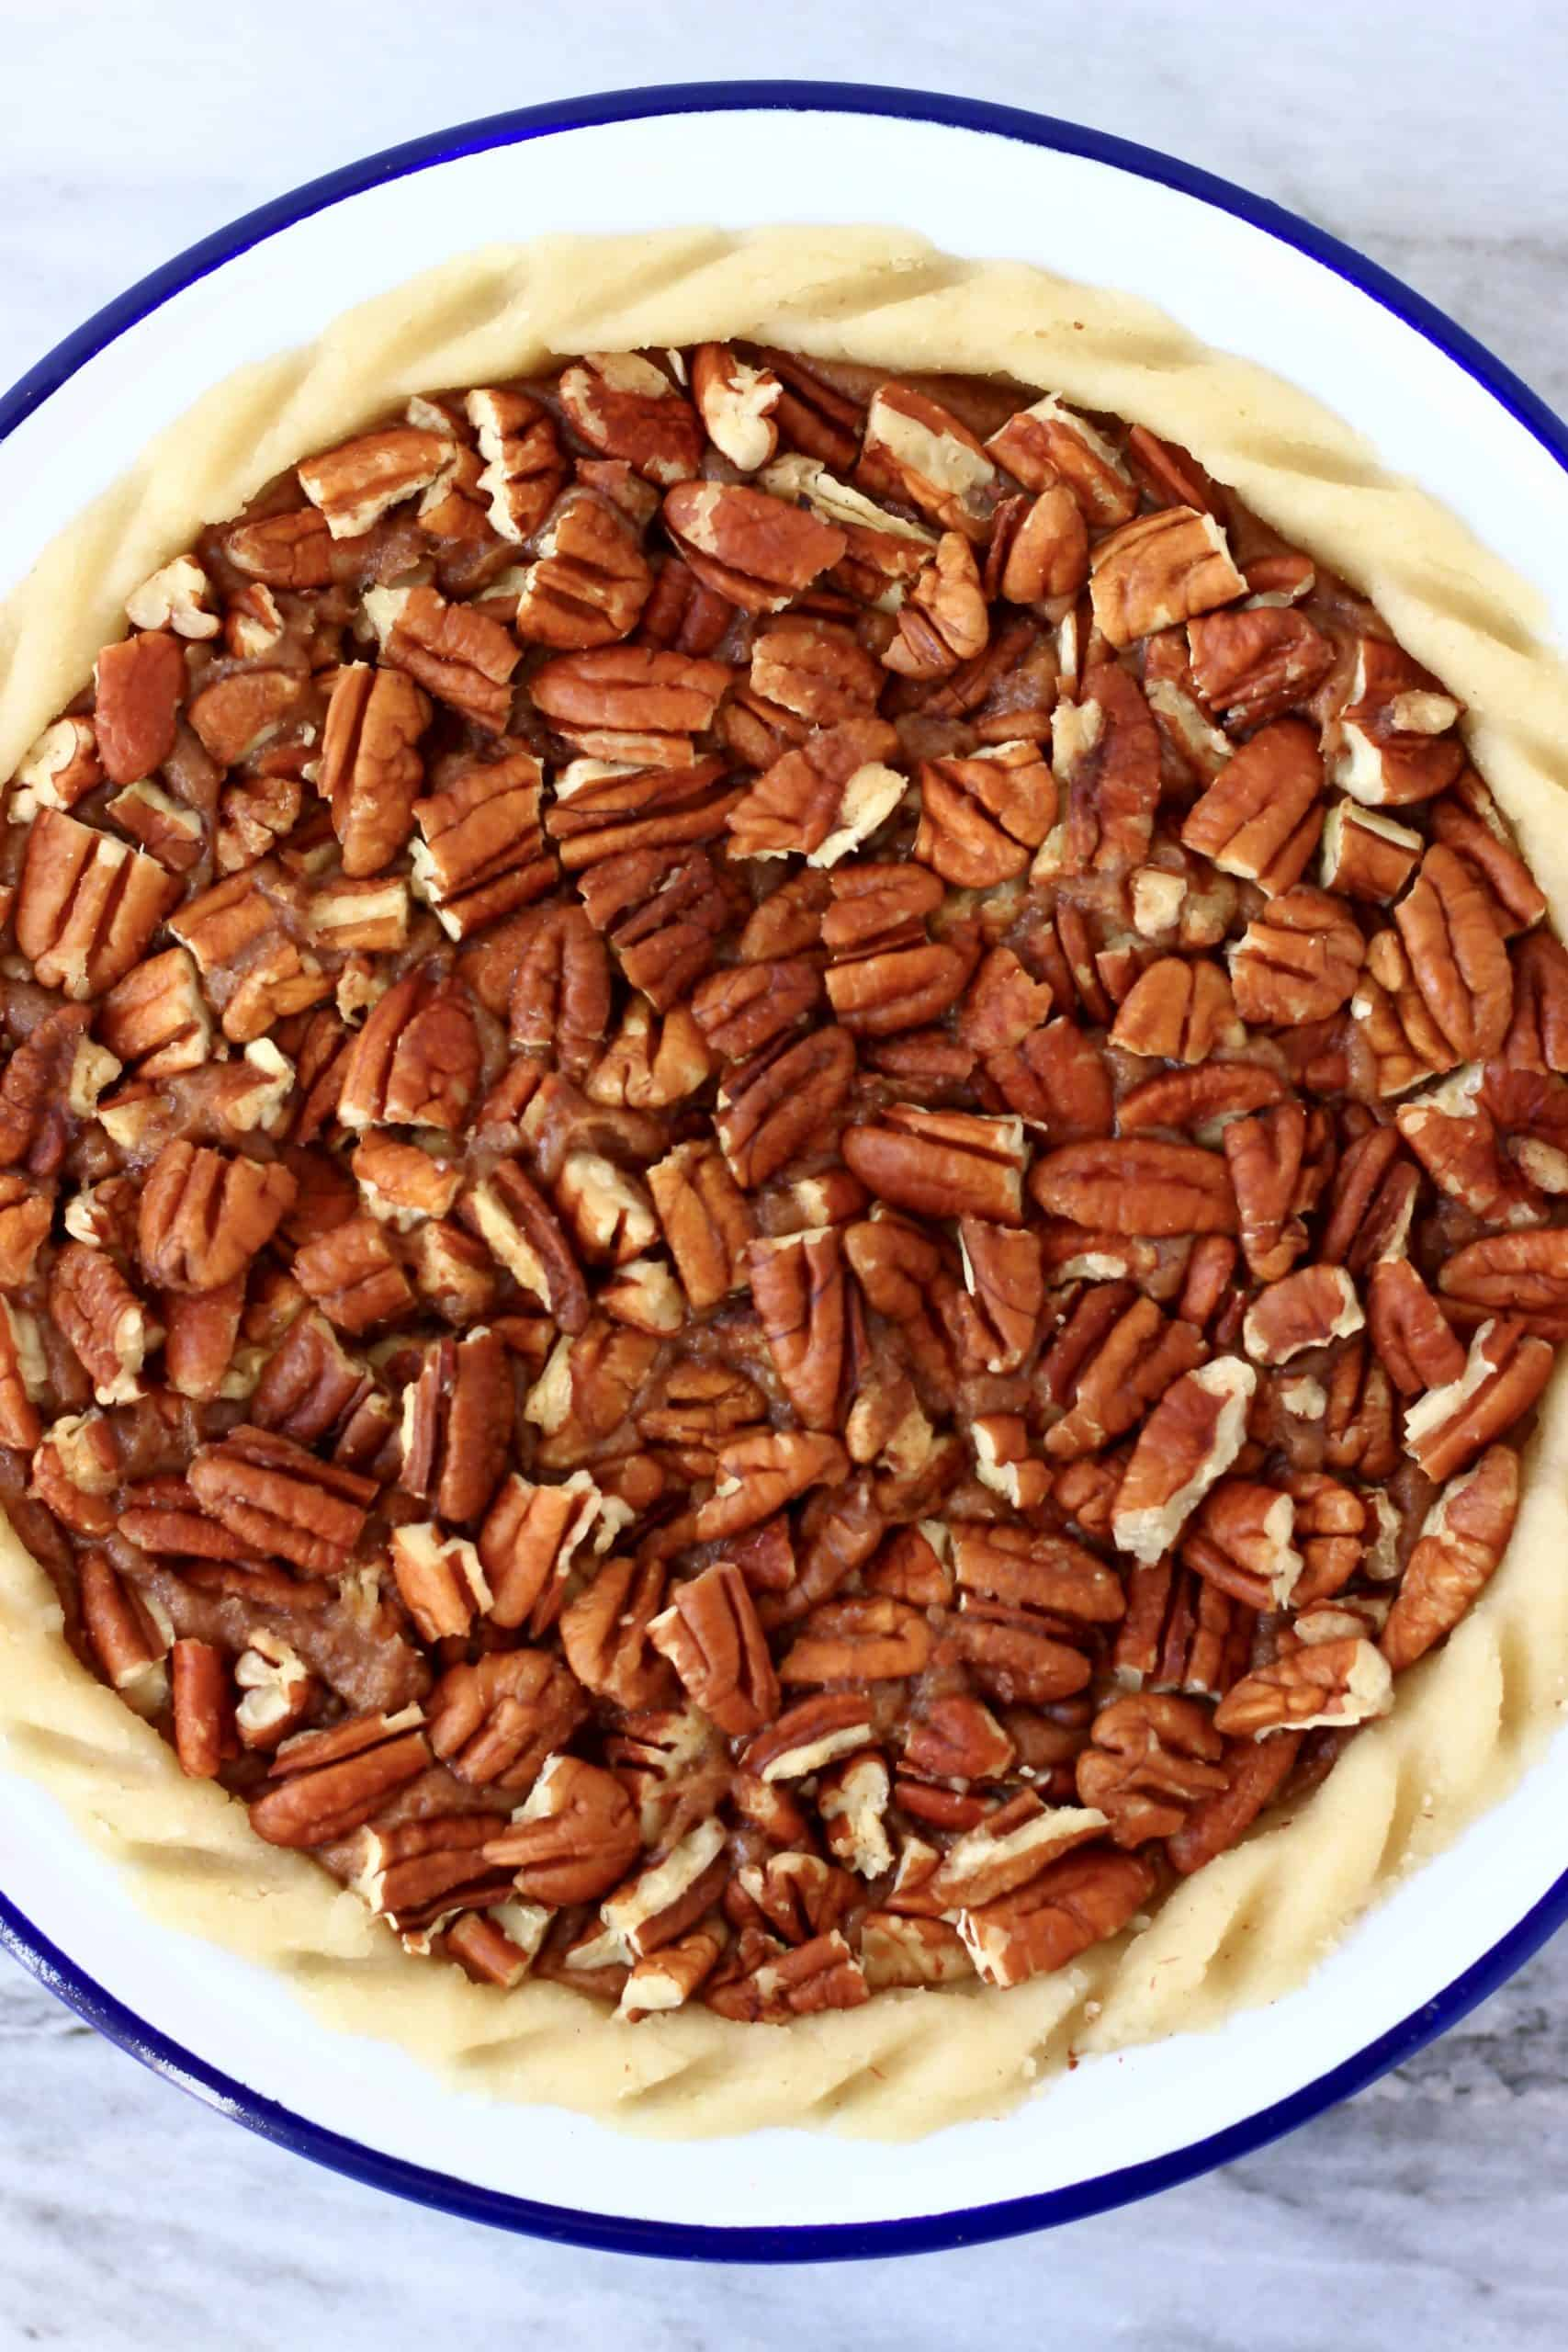 Raw gluten-free vegan pecan pie topped with chopped pecan nuts in a pie dish